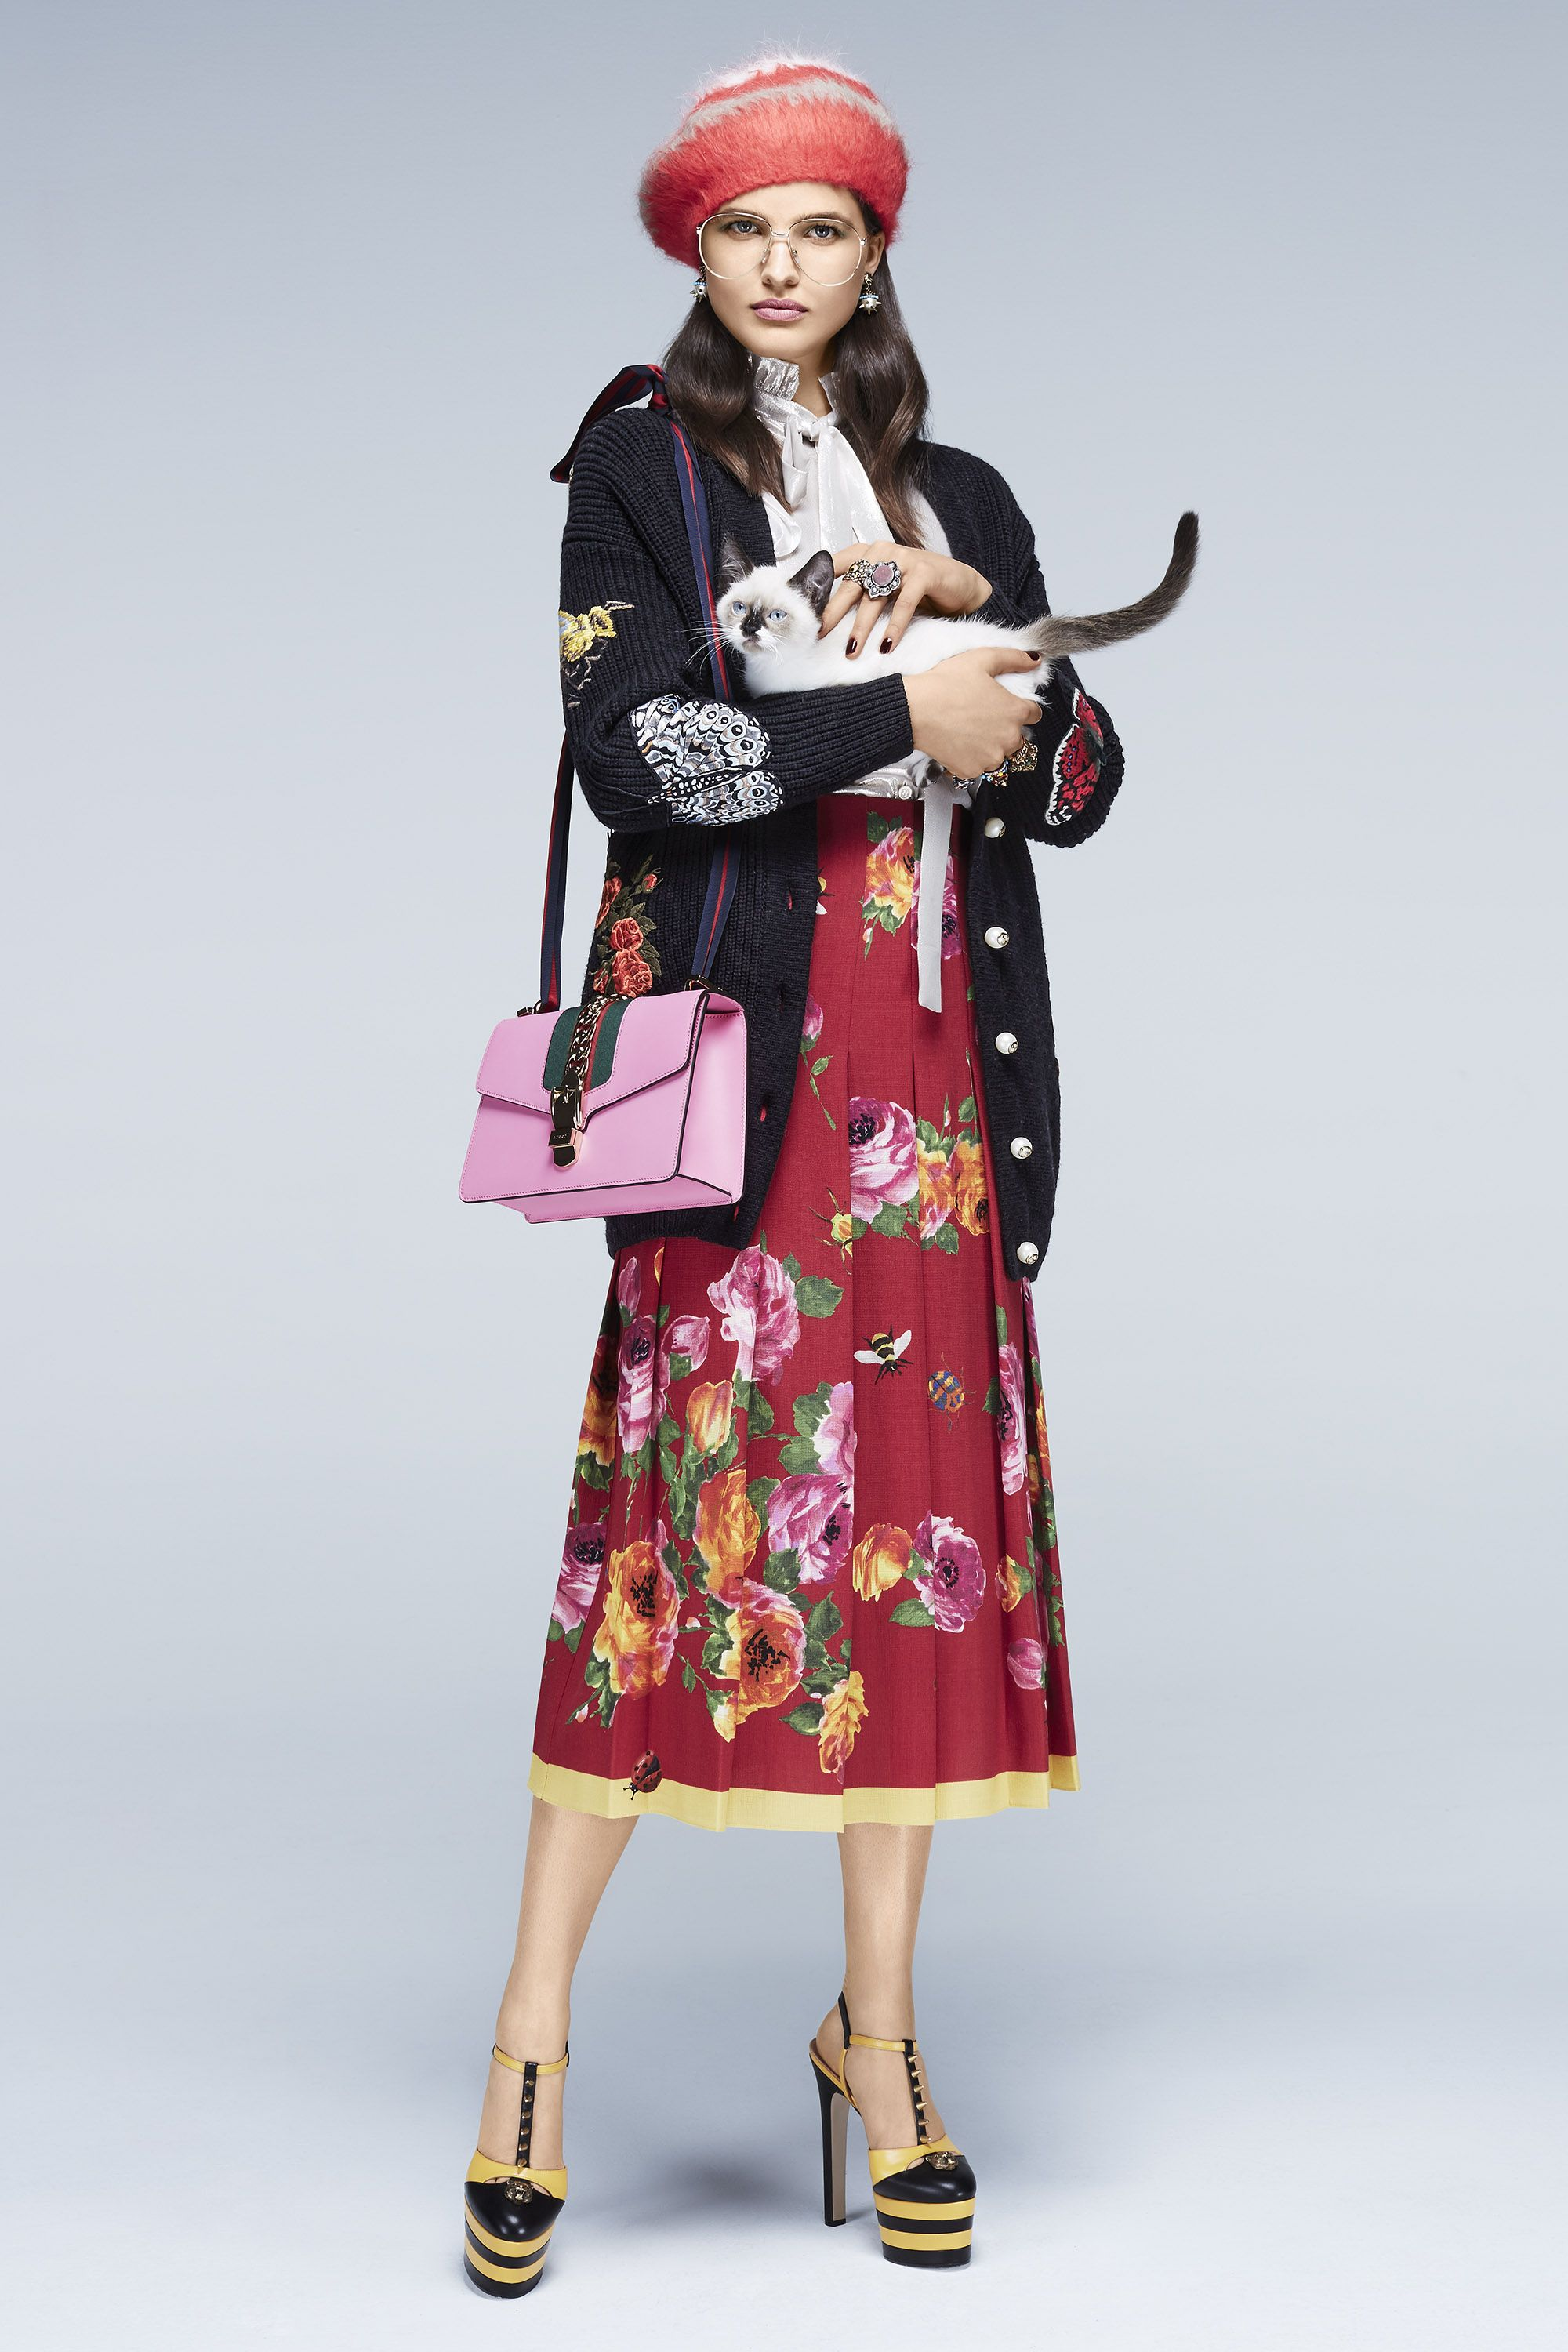 "<p><strong>Gucci </strong>cardigan, $5,980, blouse, $1,390, skirt, $1,890, beret, $360, eyeglasses, price upon request, earrings, $450, rings, $330-$580, bag, $2,490, and shoes, $1,100, <a href=""https://www.gucci.com/us/en/"" target=""_blank"">gucci.com</a>. </p>"